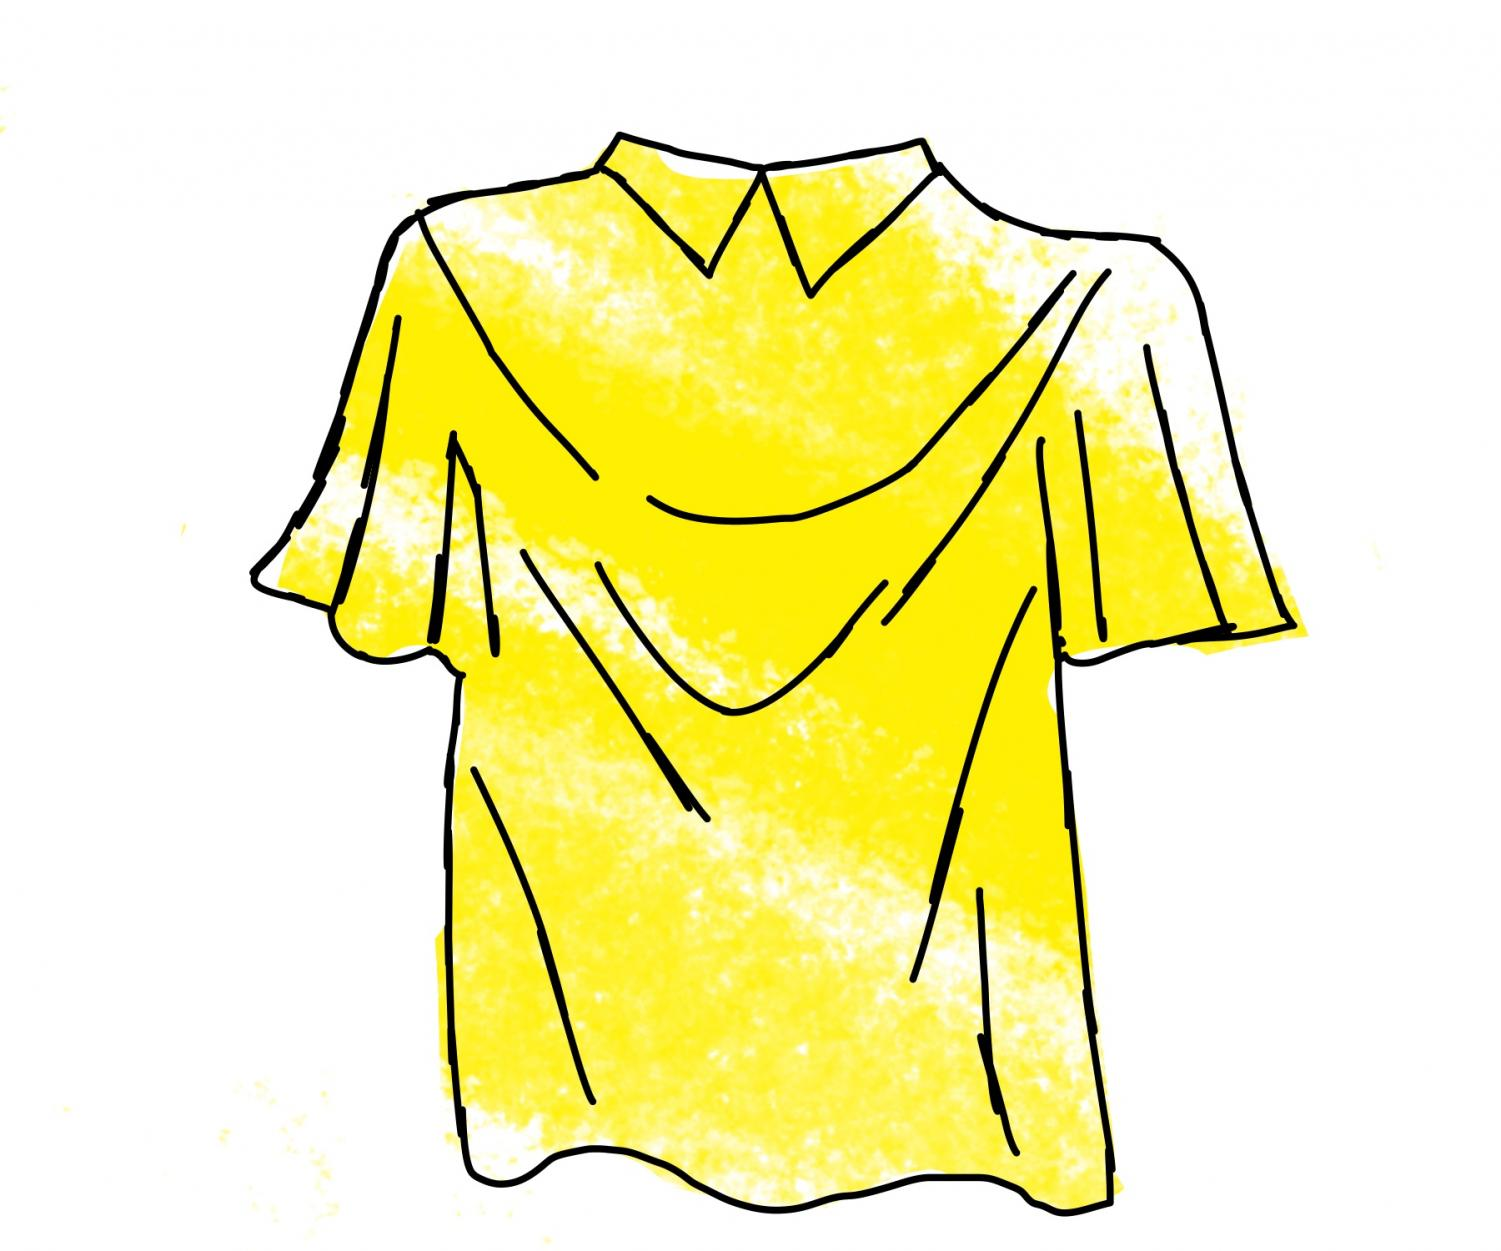 When we see the safe eds we also think of the yellow shirt so the picture that everyone would know.